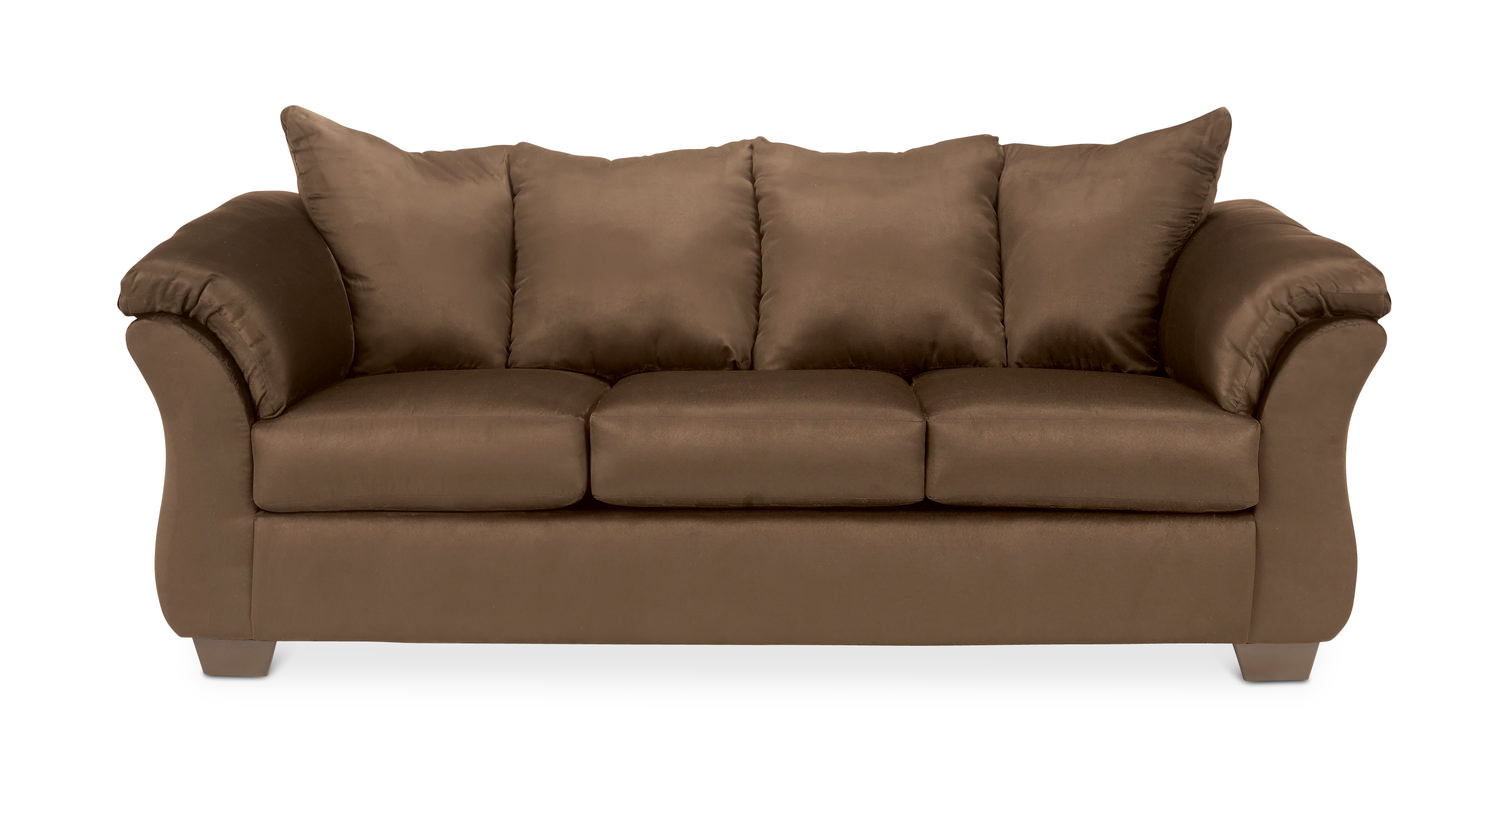 Chocolate brown microfiber motion recliner loveseat sofa for Chocolate brown microfiber sectional sofa